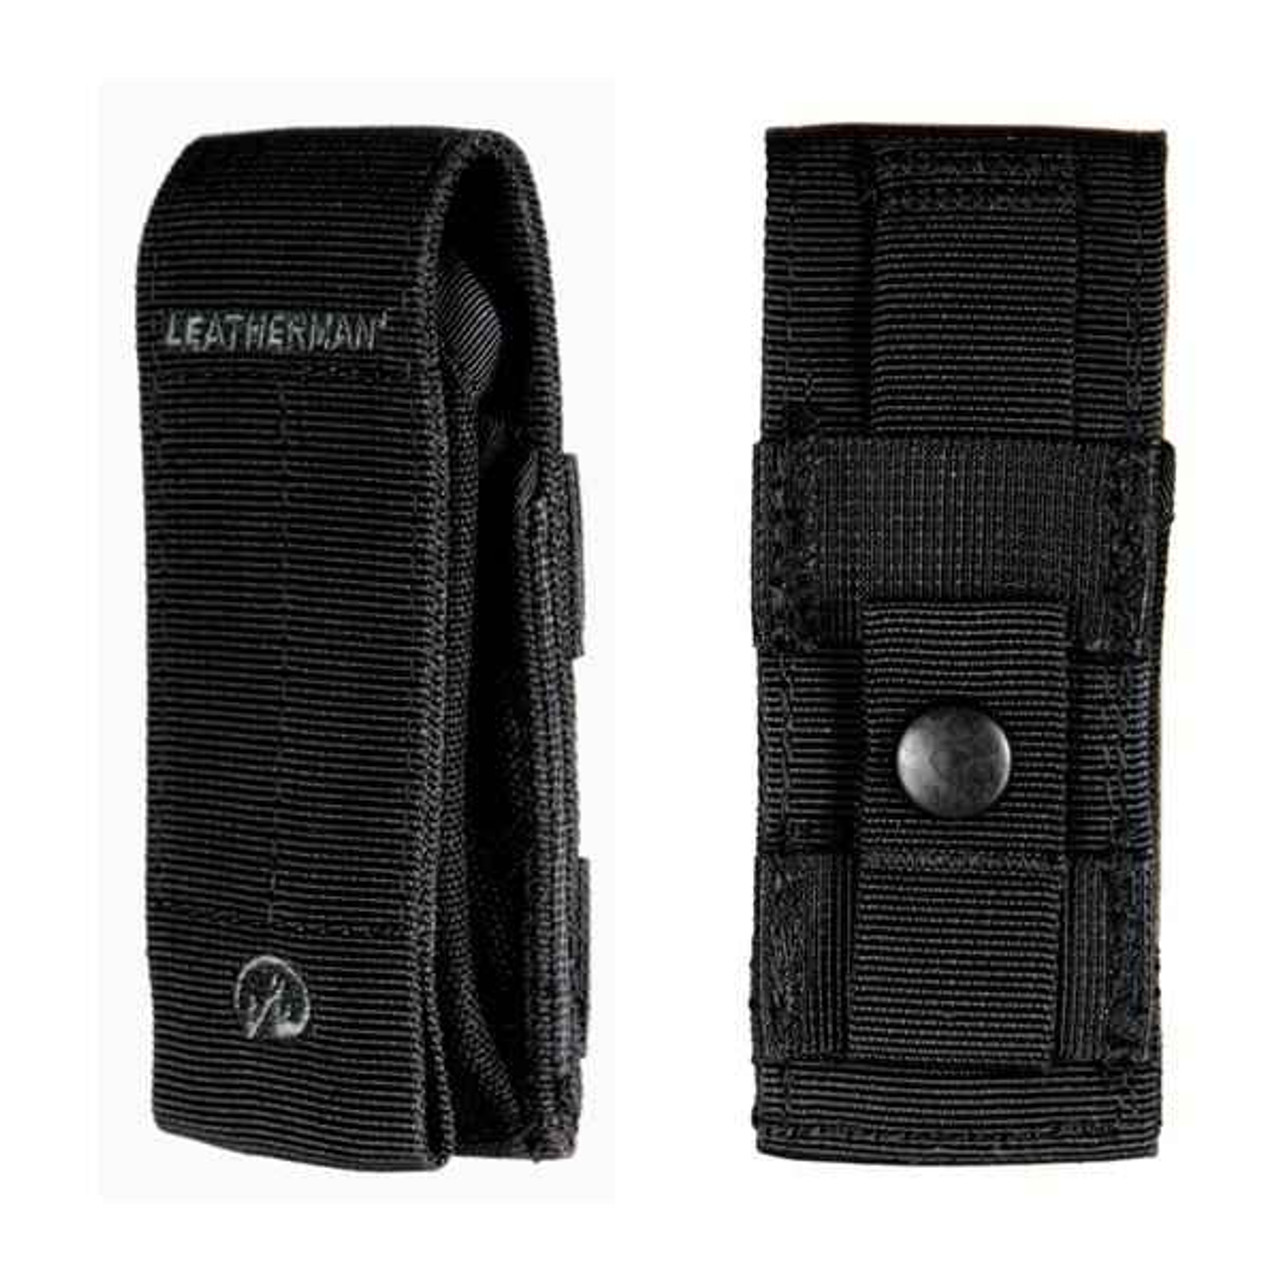 Leatherman 931005 Nylon MOLLE Sheath